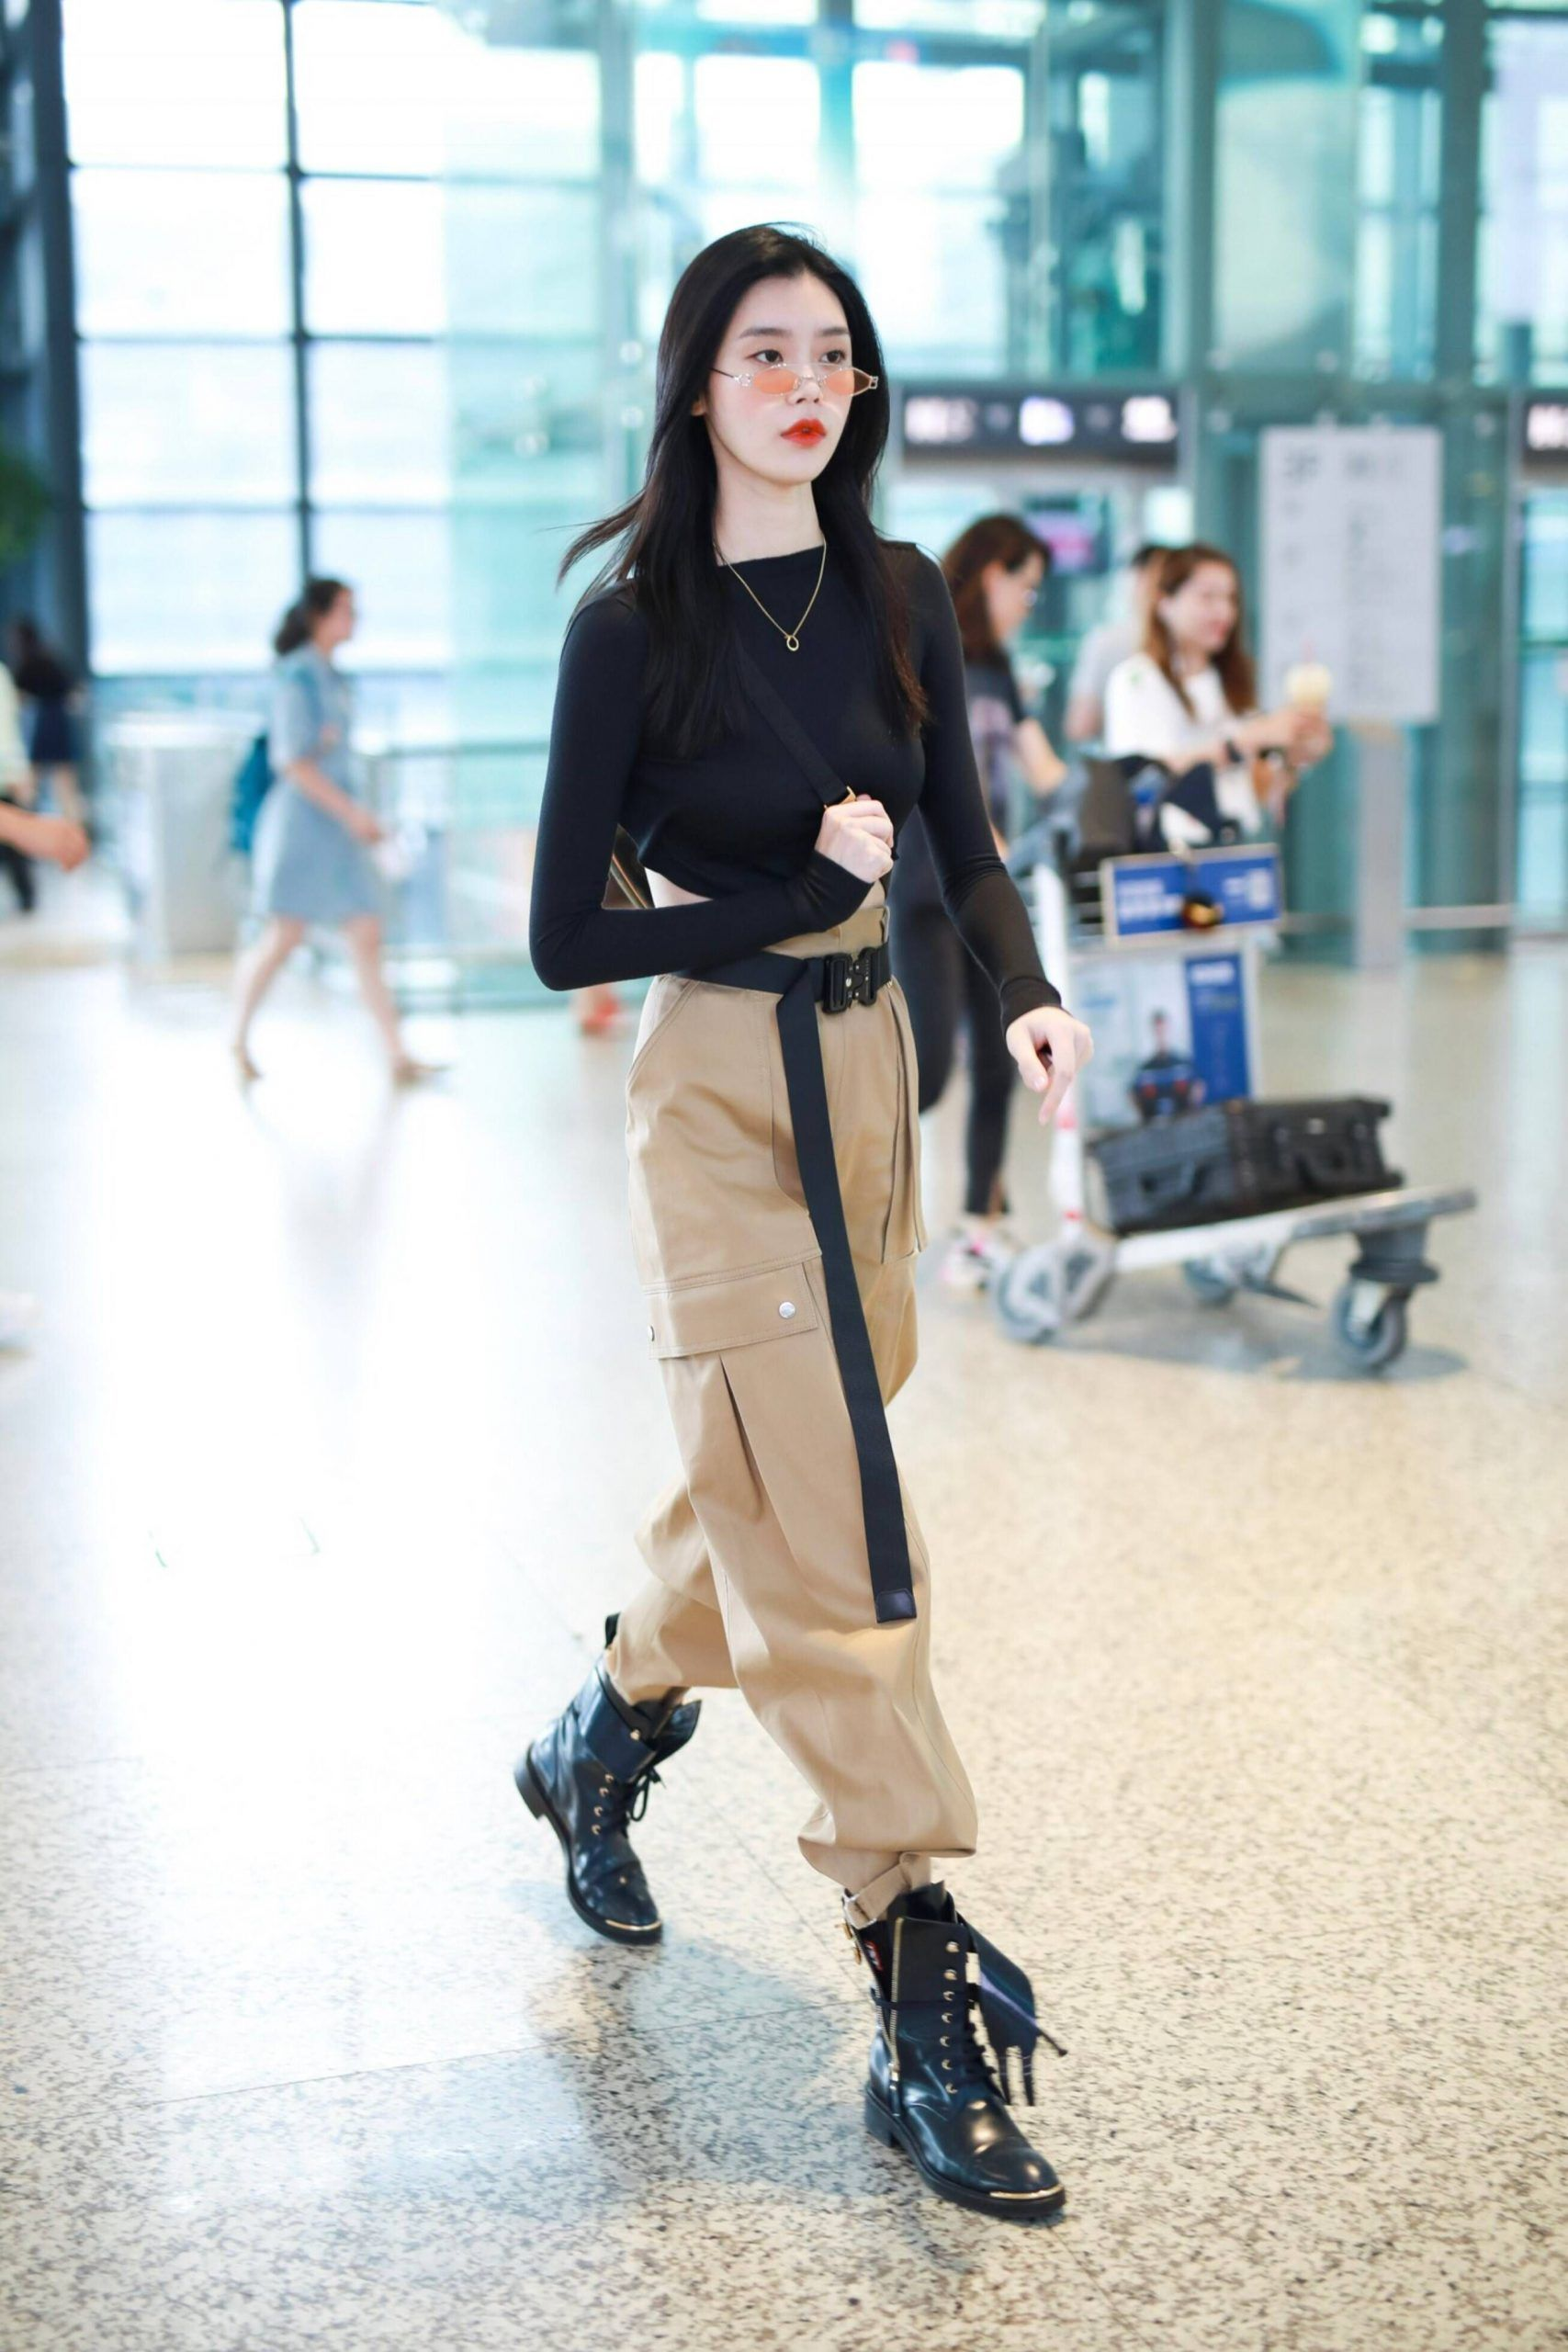 Ming Xi from The Best Airport Style Inspiration From Asian Celebrities#airport #asian #celebrities